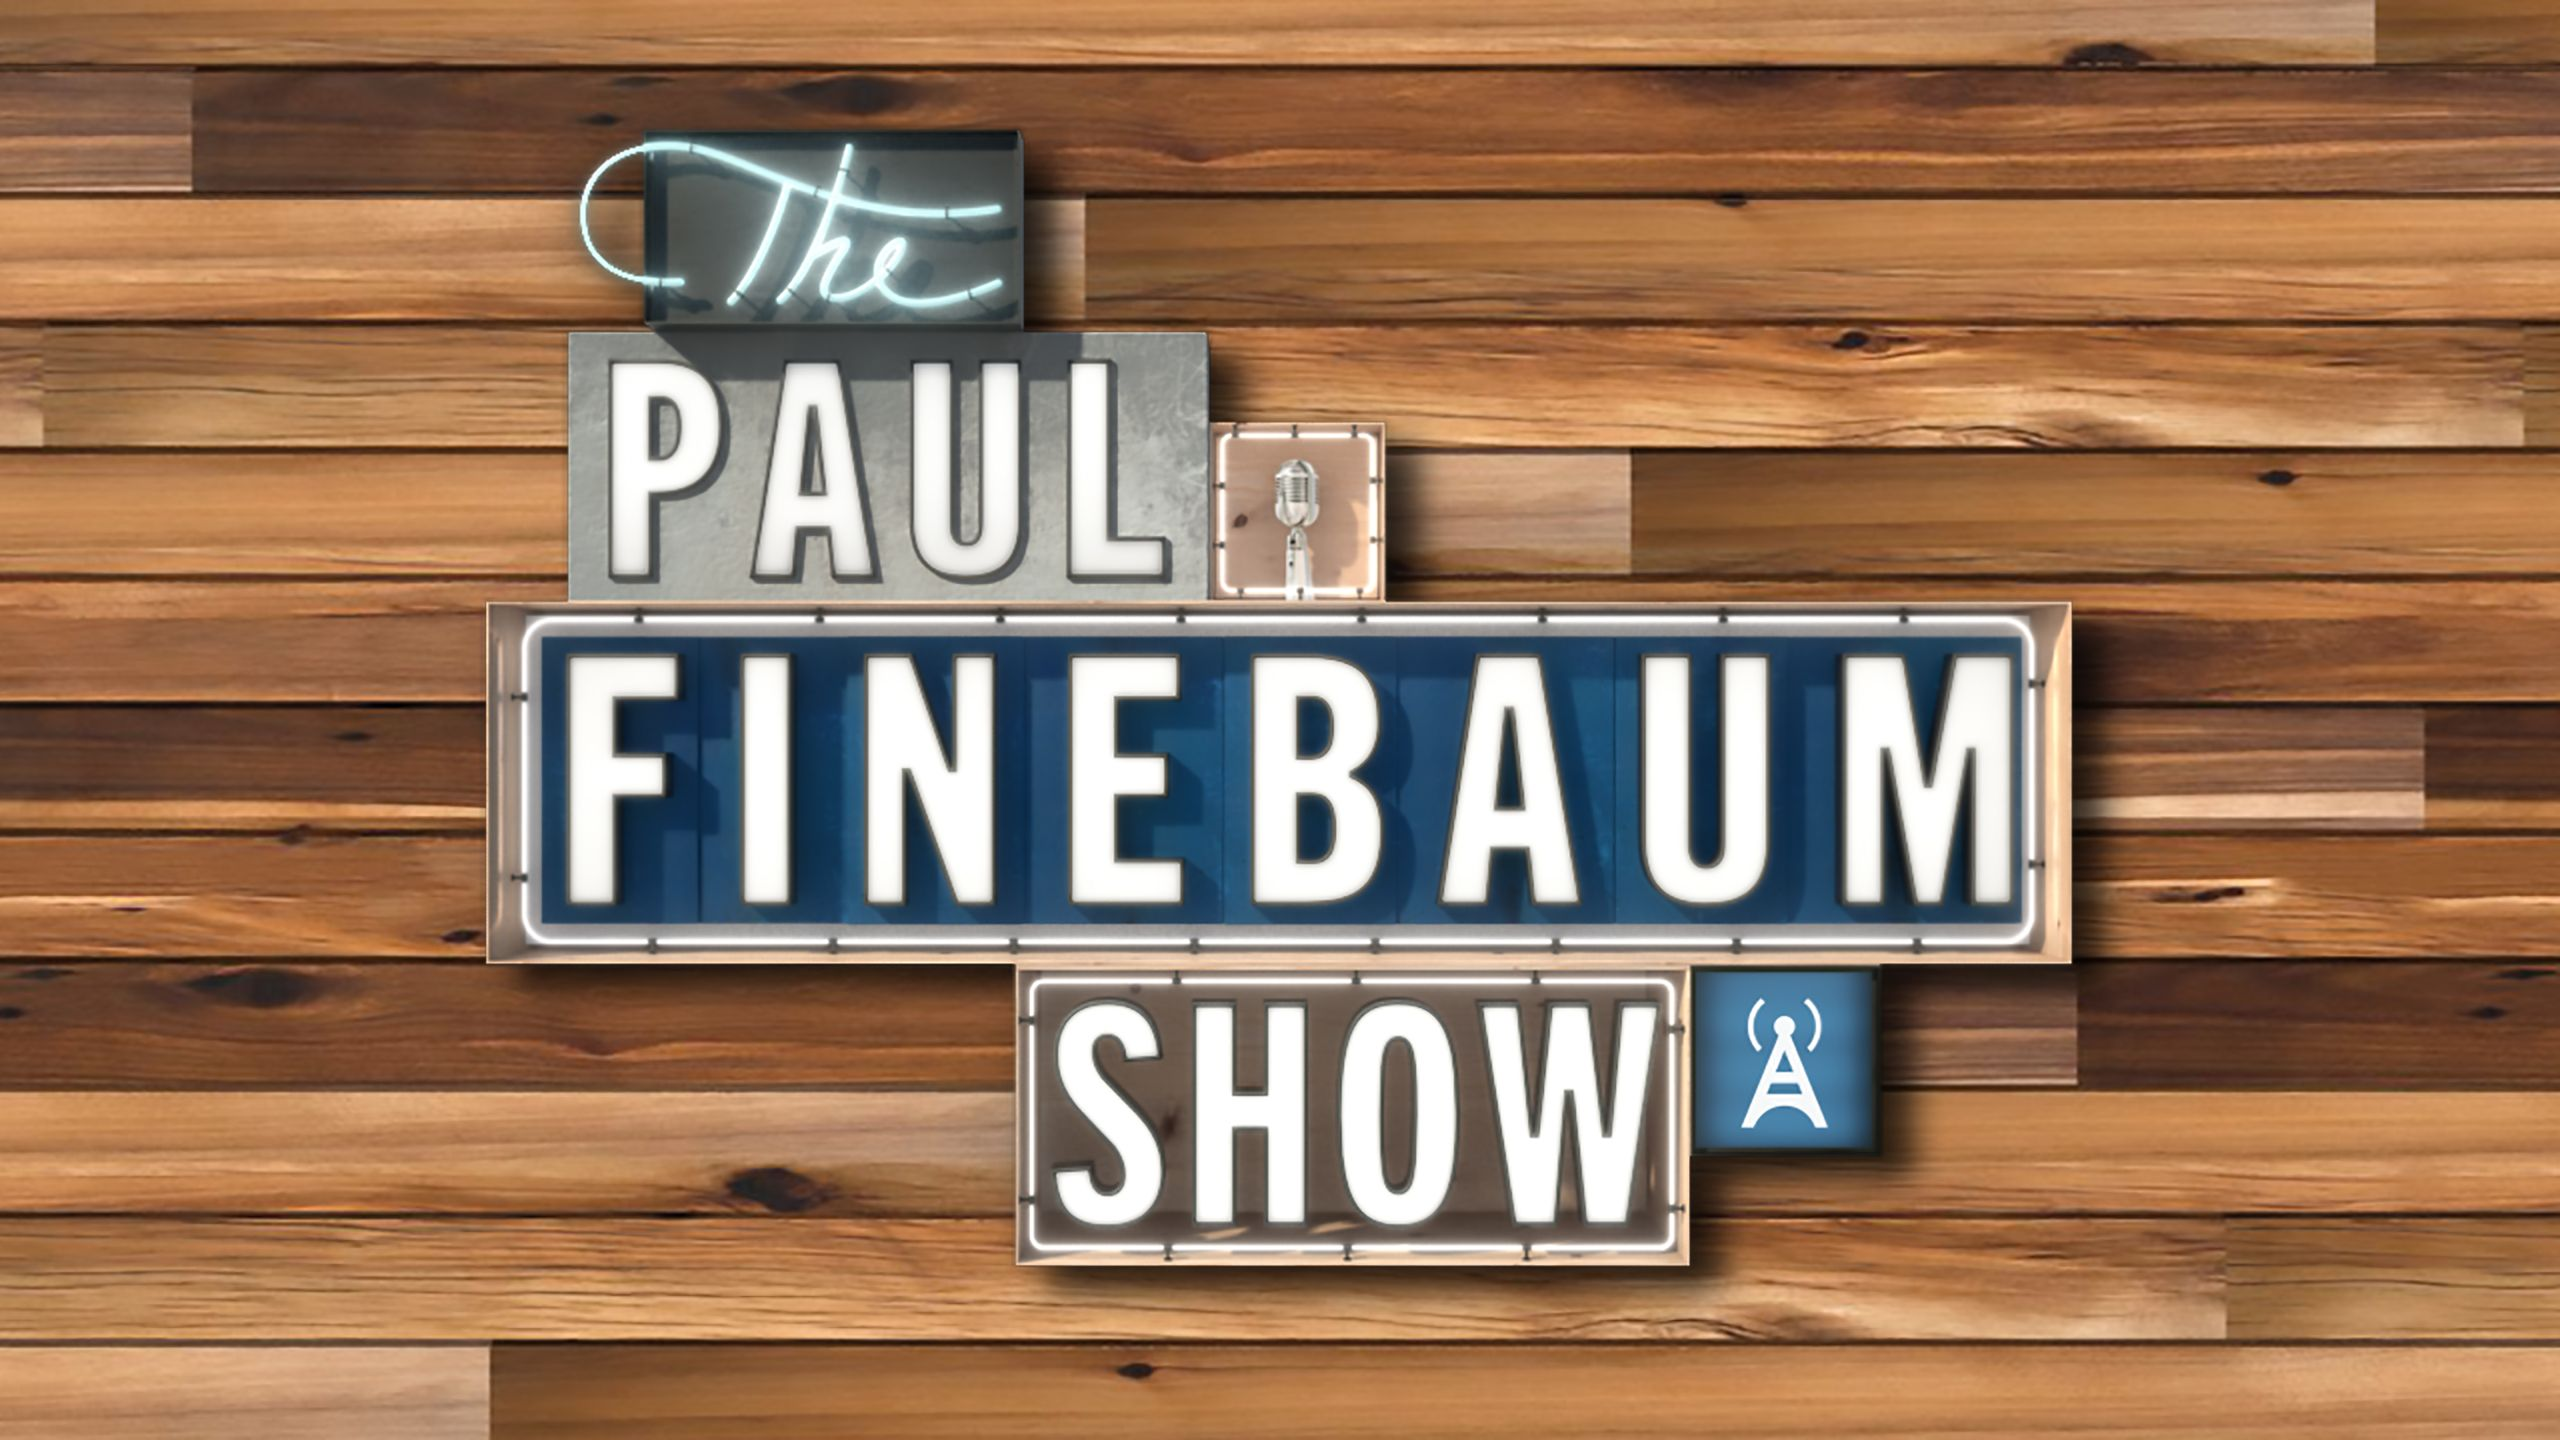 Wed, 11/22 - The Paul Finebaum Show